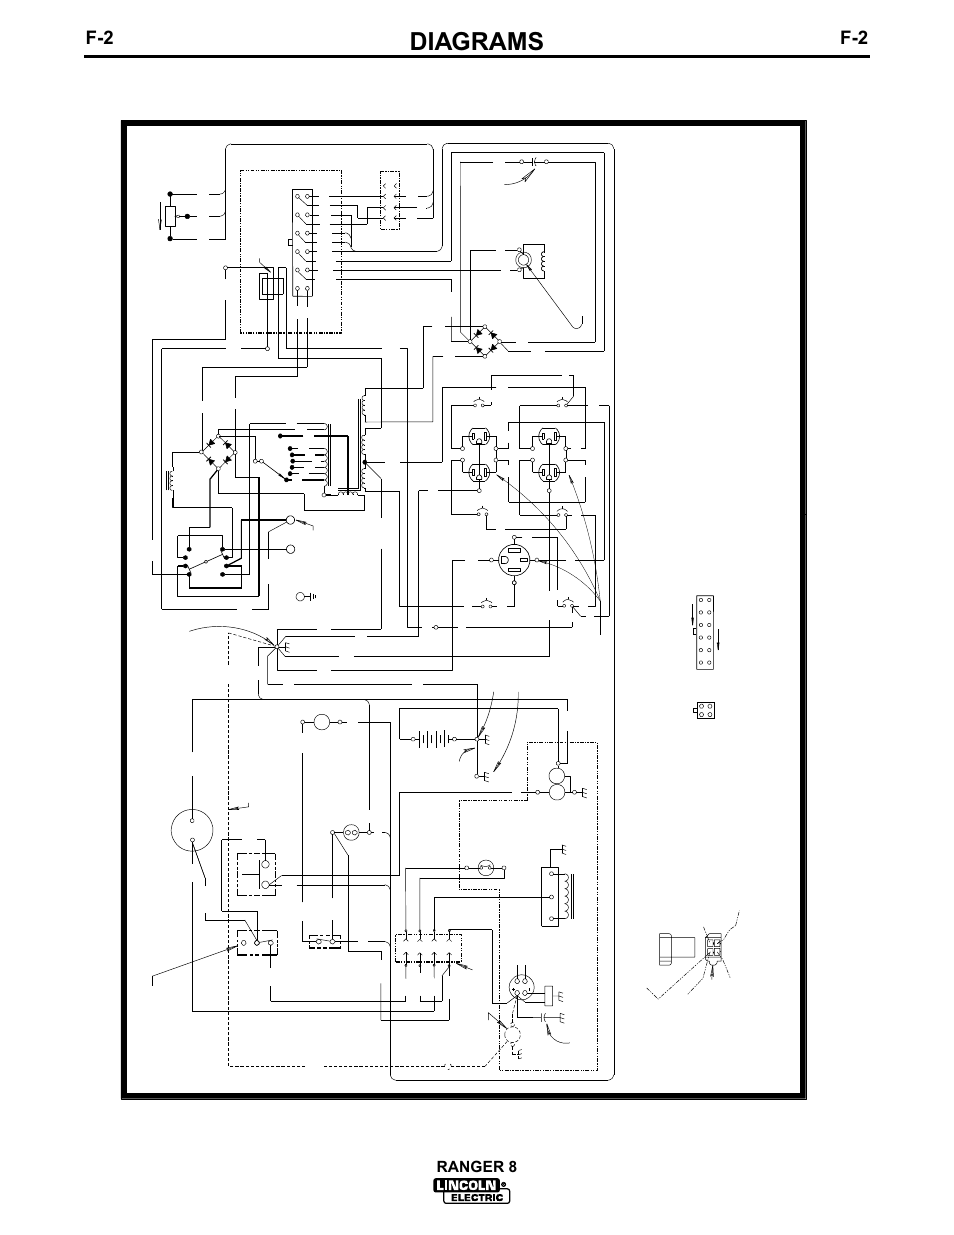 Lincoln Ranger 8 Wiring Diagram Services Diagrams Electrical Symbols Per E1537 Electric Rh Manualsdir Com 1965